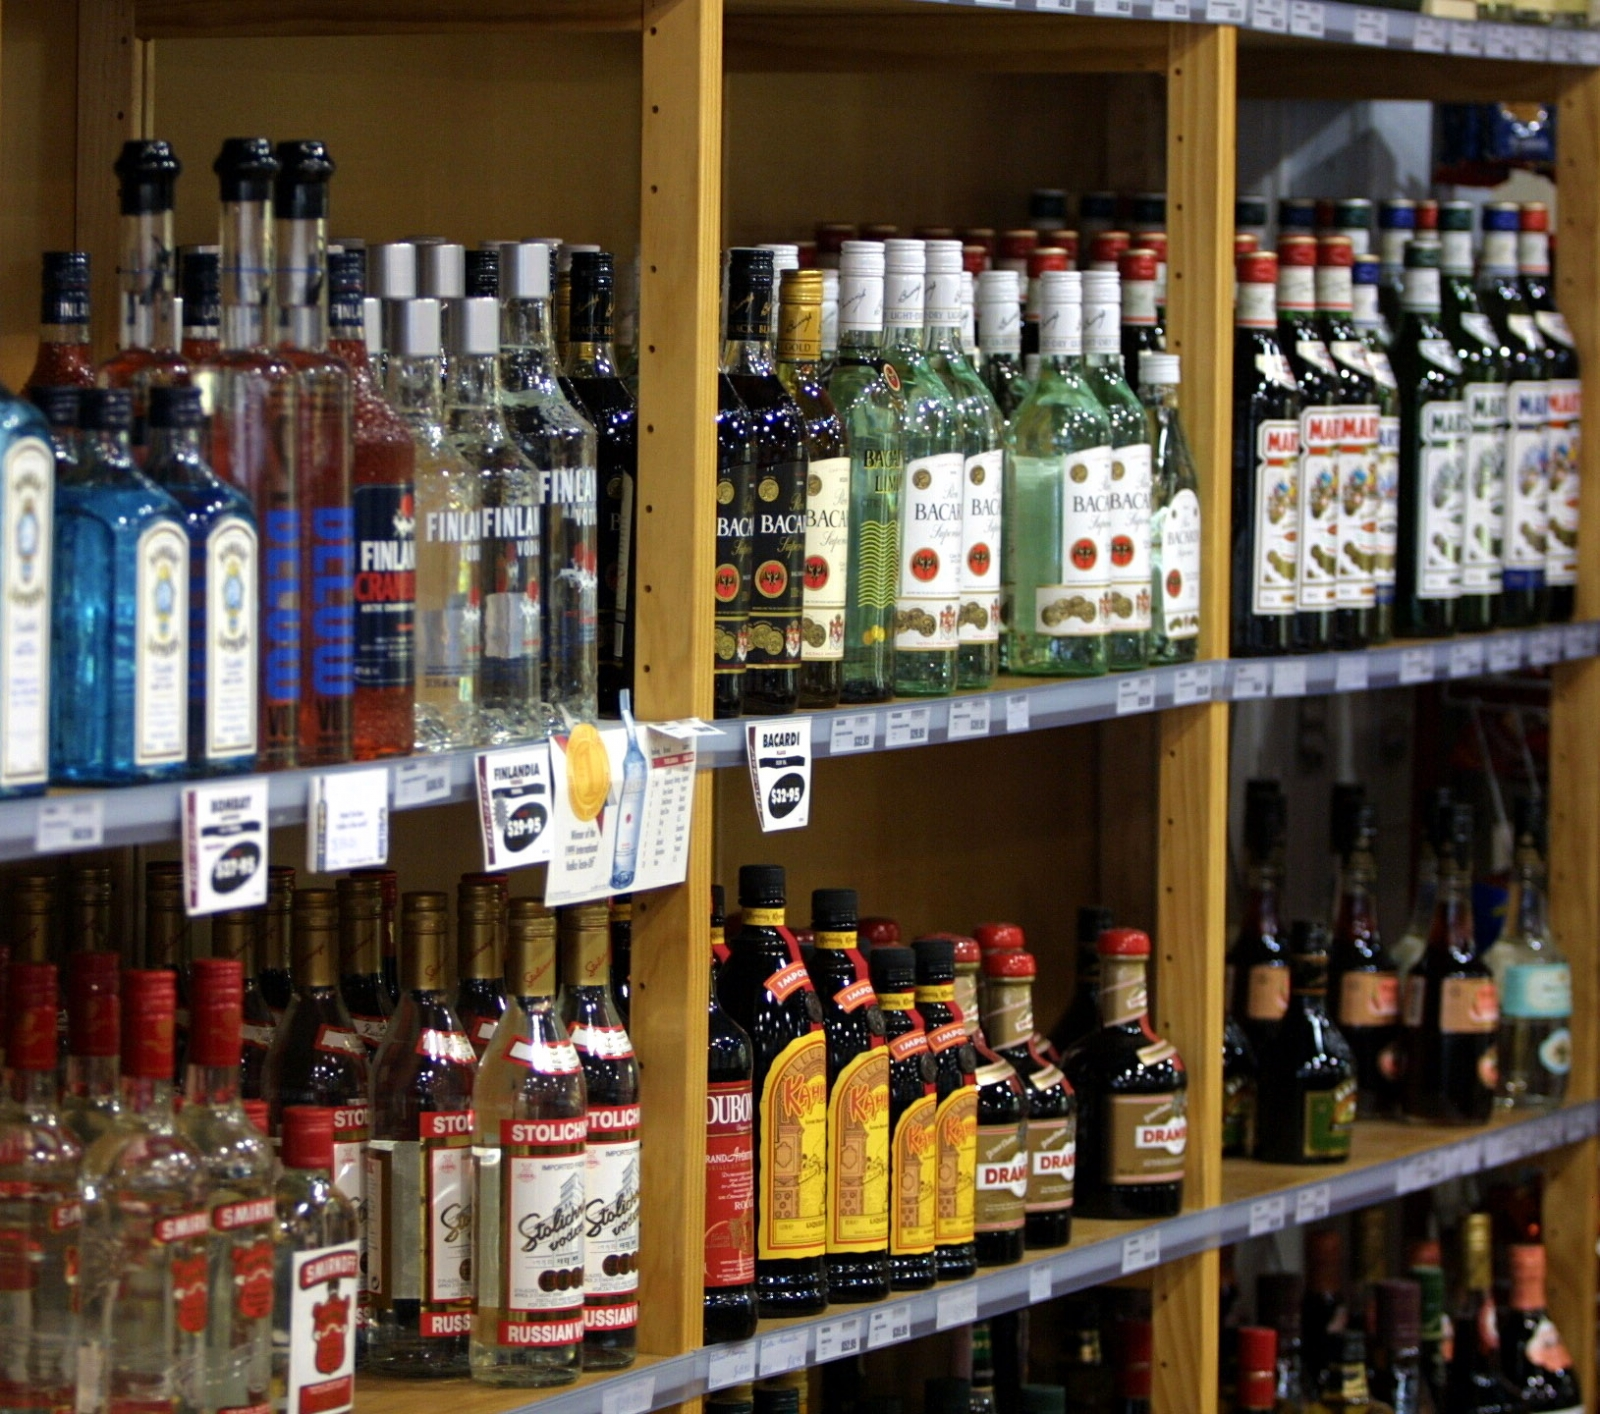 Stock Spirits more than doubles its operating profit for the first half of 2016